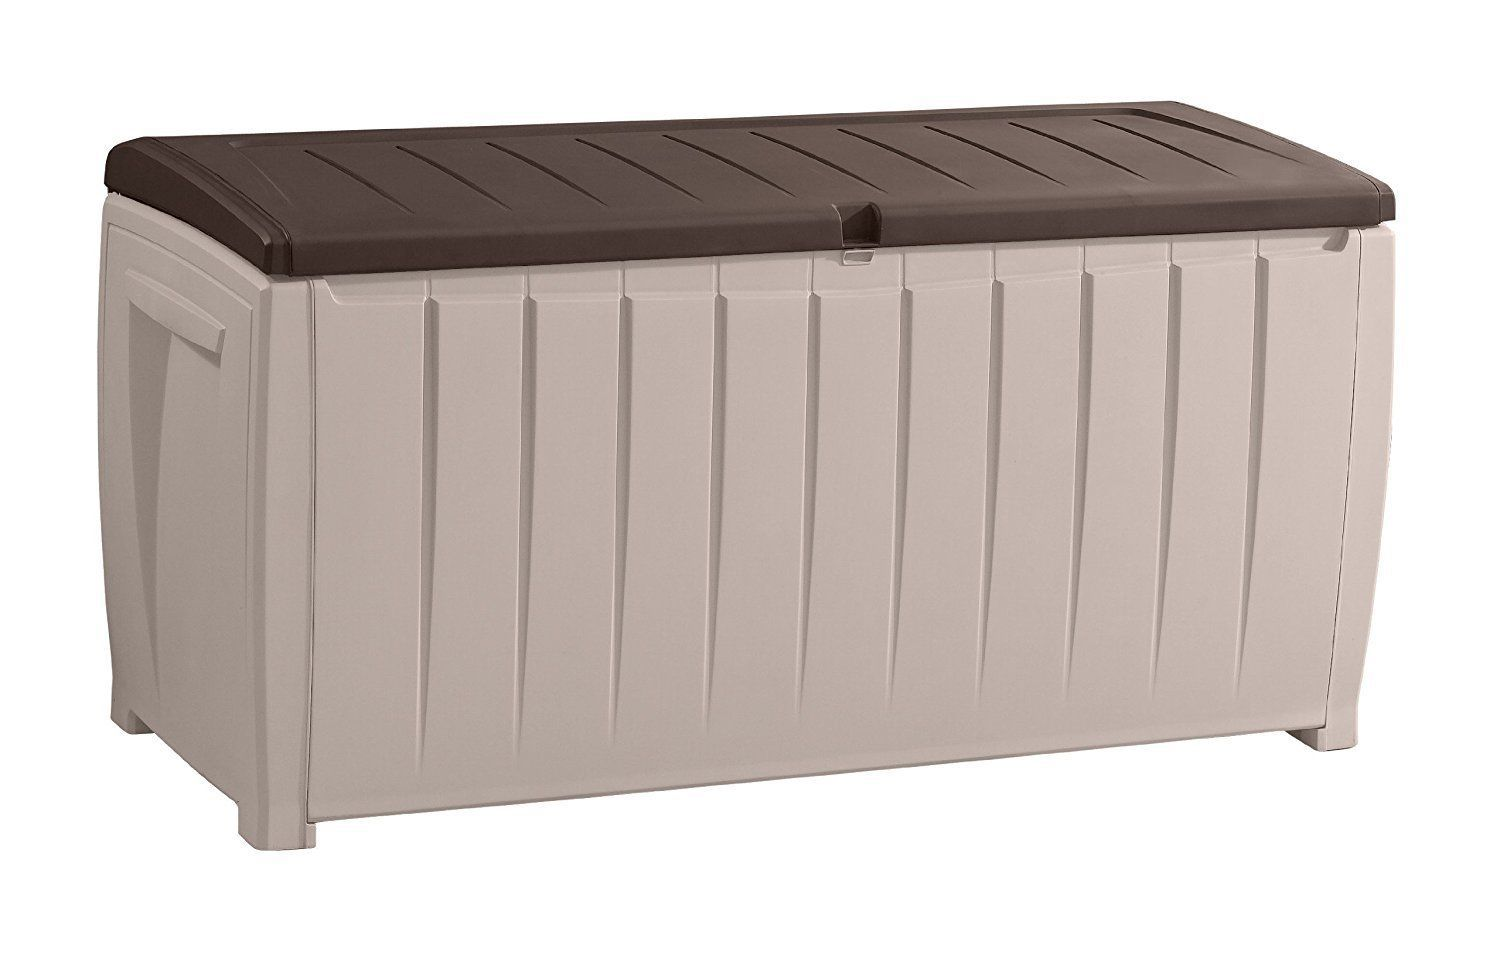 Outdoor Kissenbox Keter Kissenbox Auflagenbox Gartenbox Novel Beige 340l Pinterest